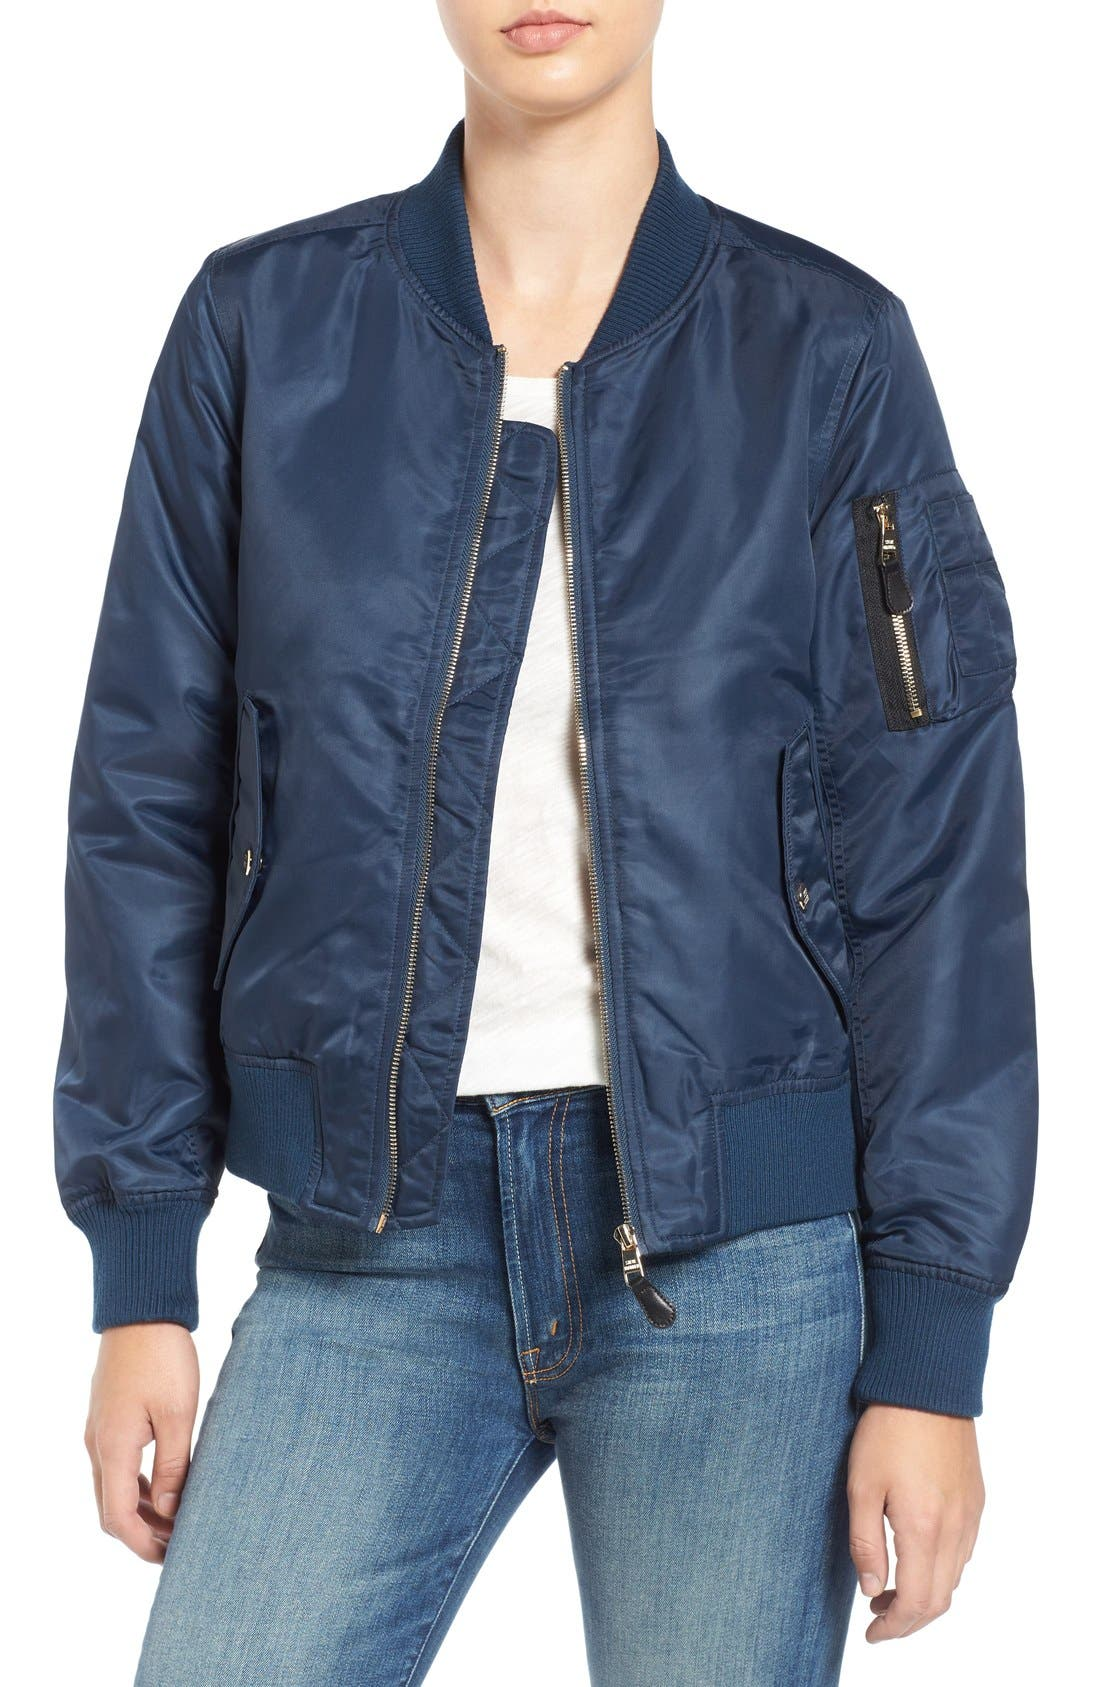 Steve Madden Side Zip Bomber Jacket